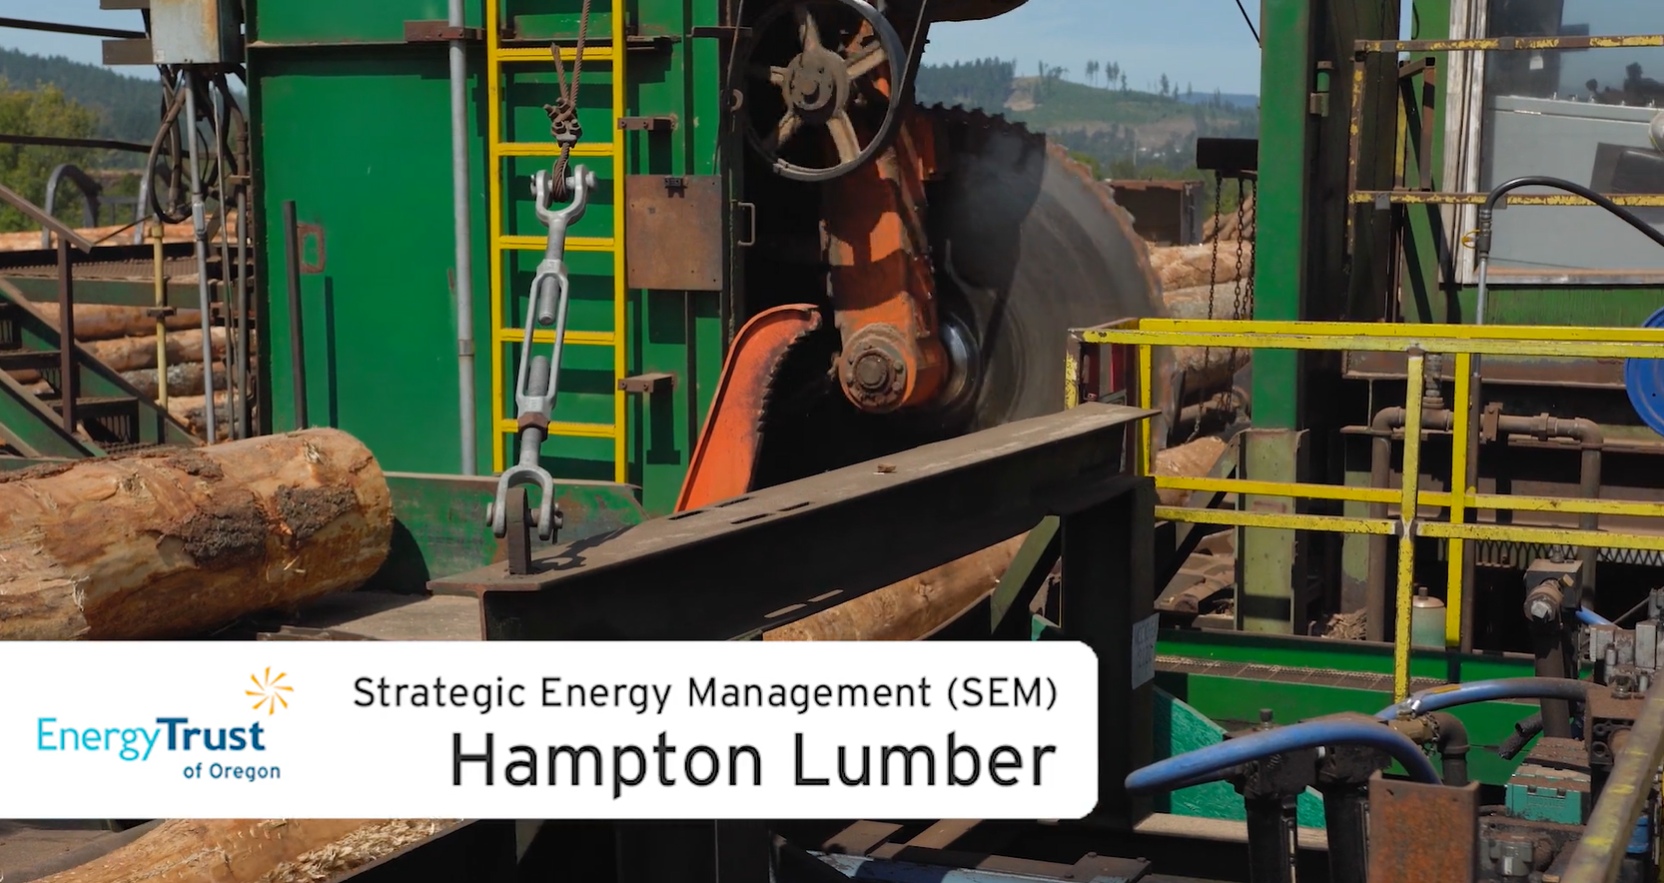 Hampton Lumber celebrates 10 years in SEM